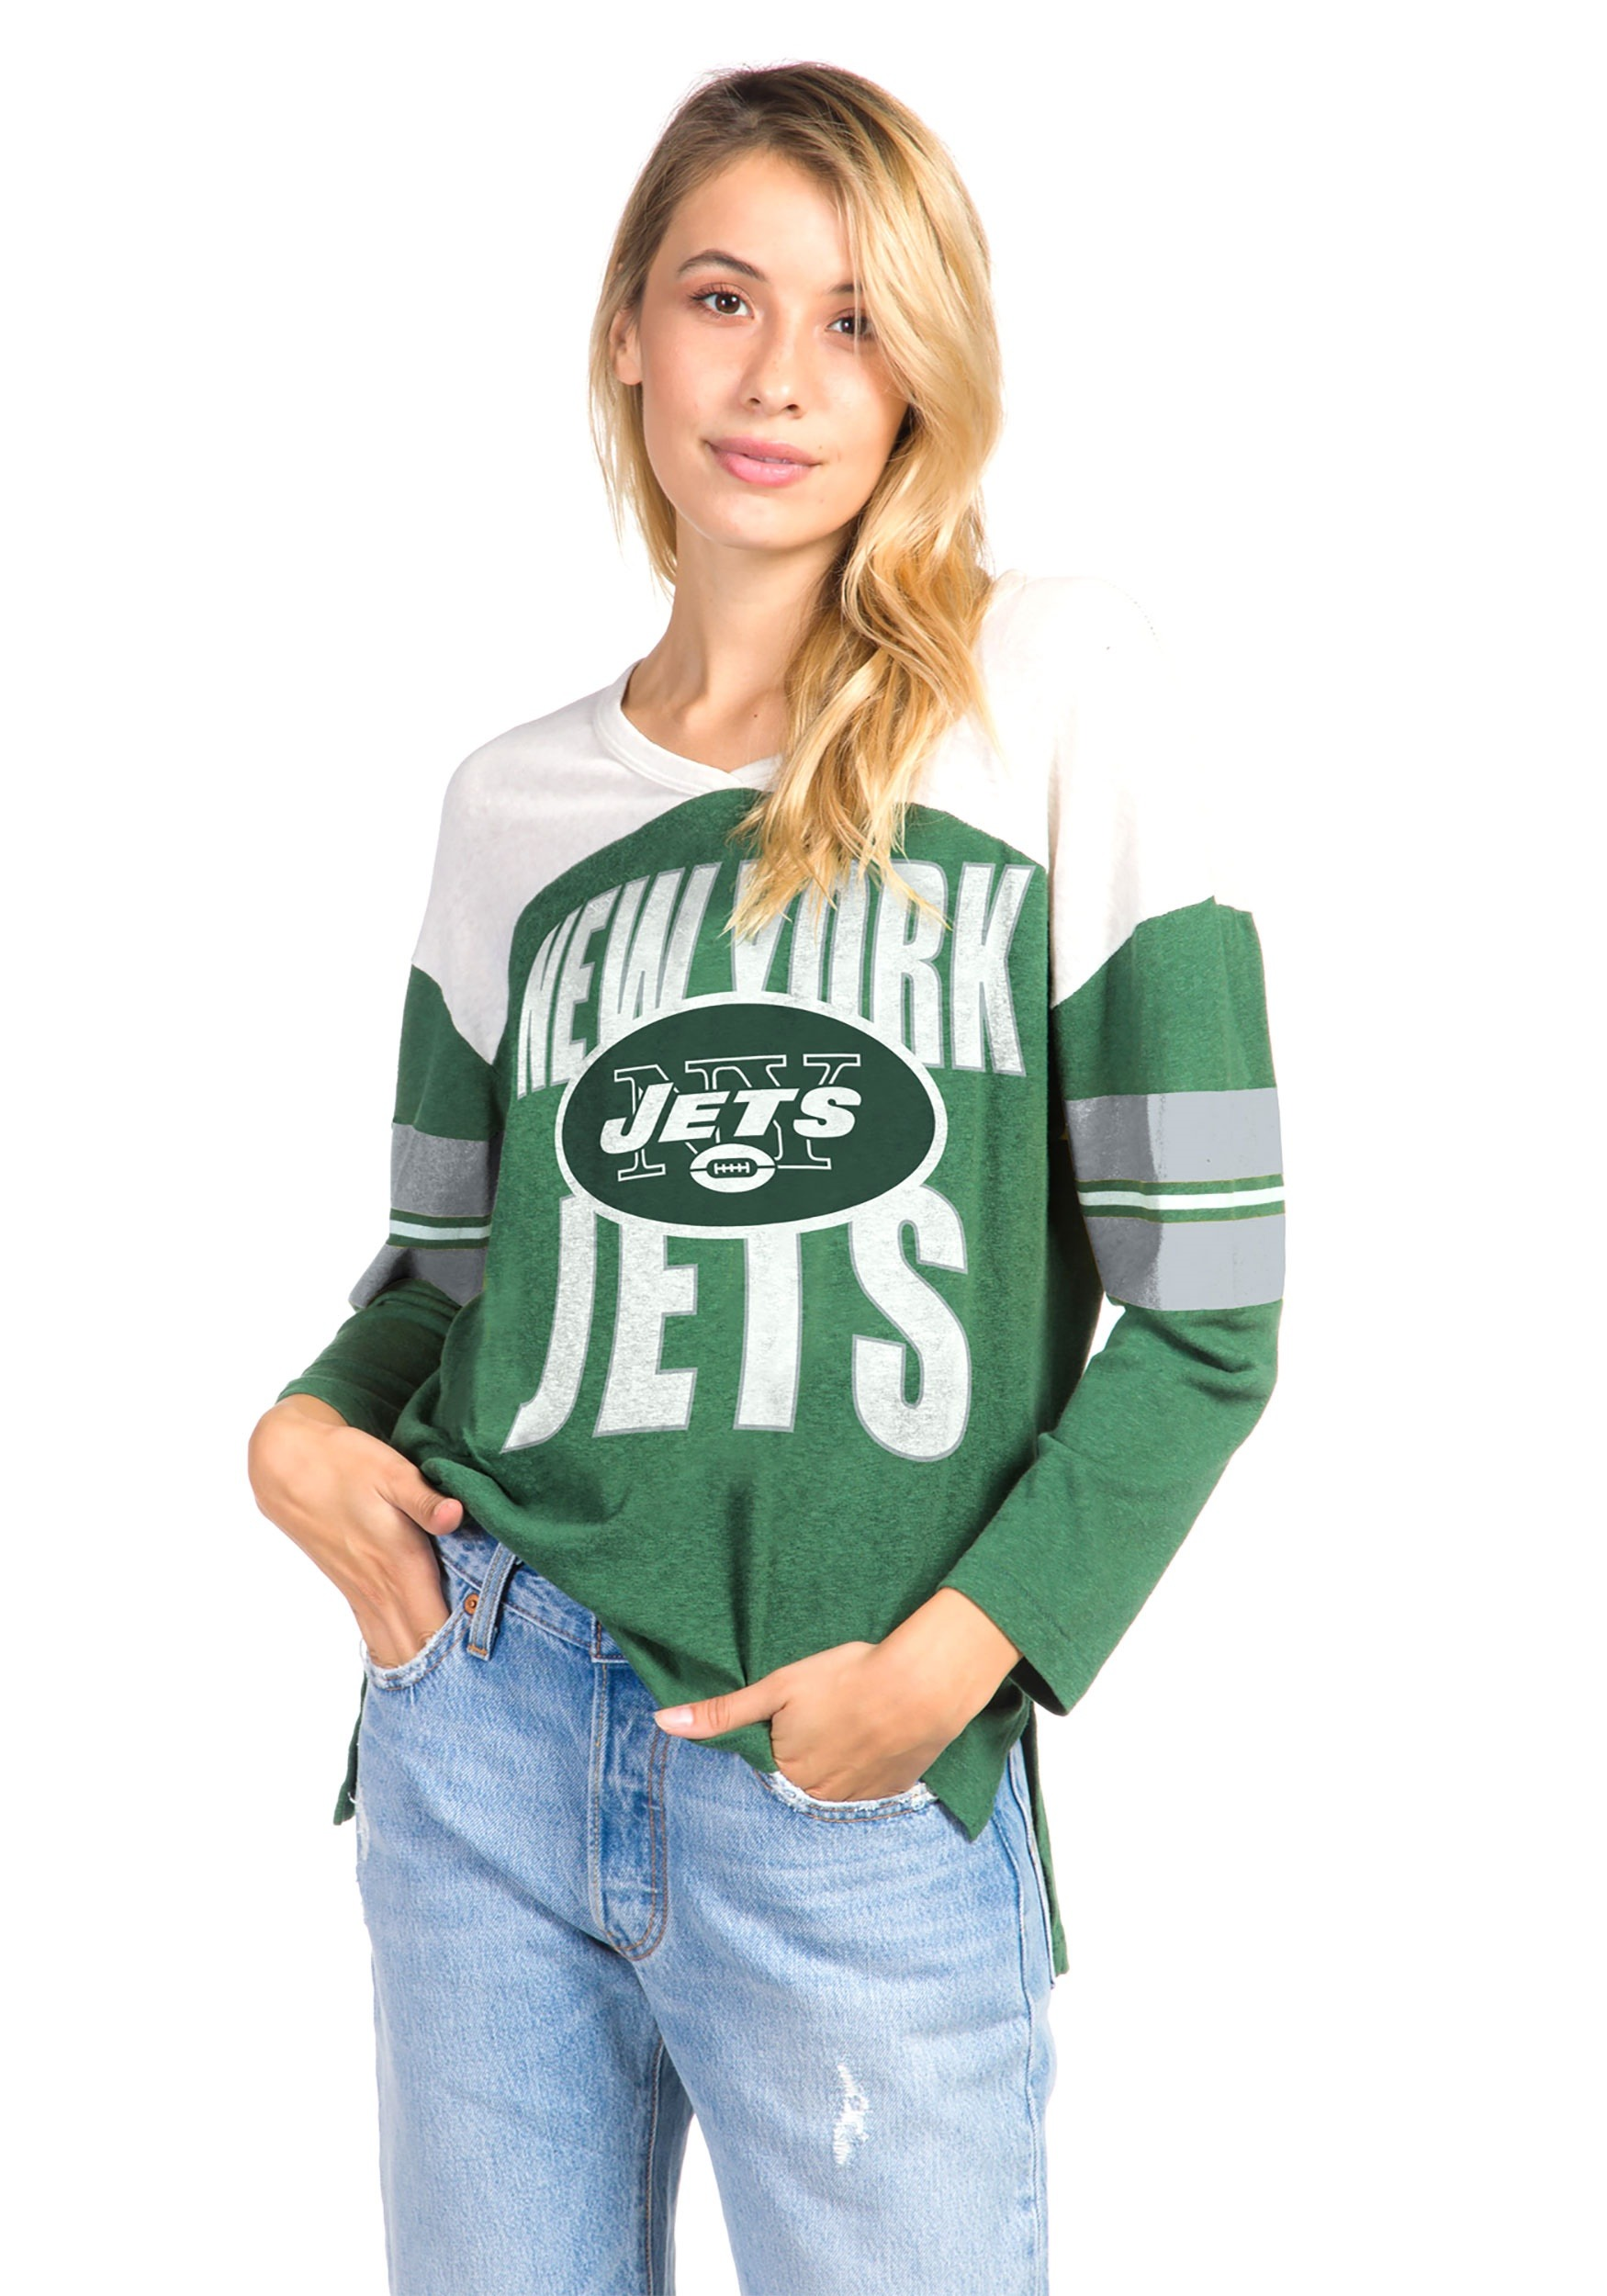 finest selection 5cefe 34a66 Women's Hunter Green New York Jets Throwback Football Tee